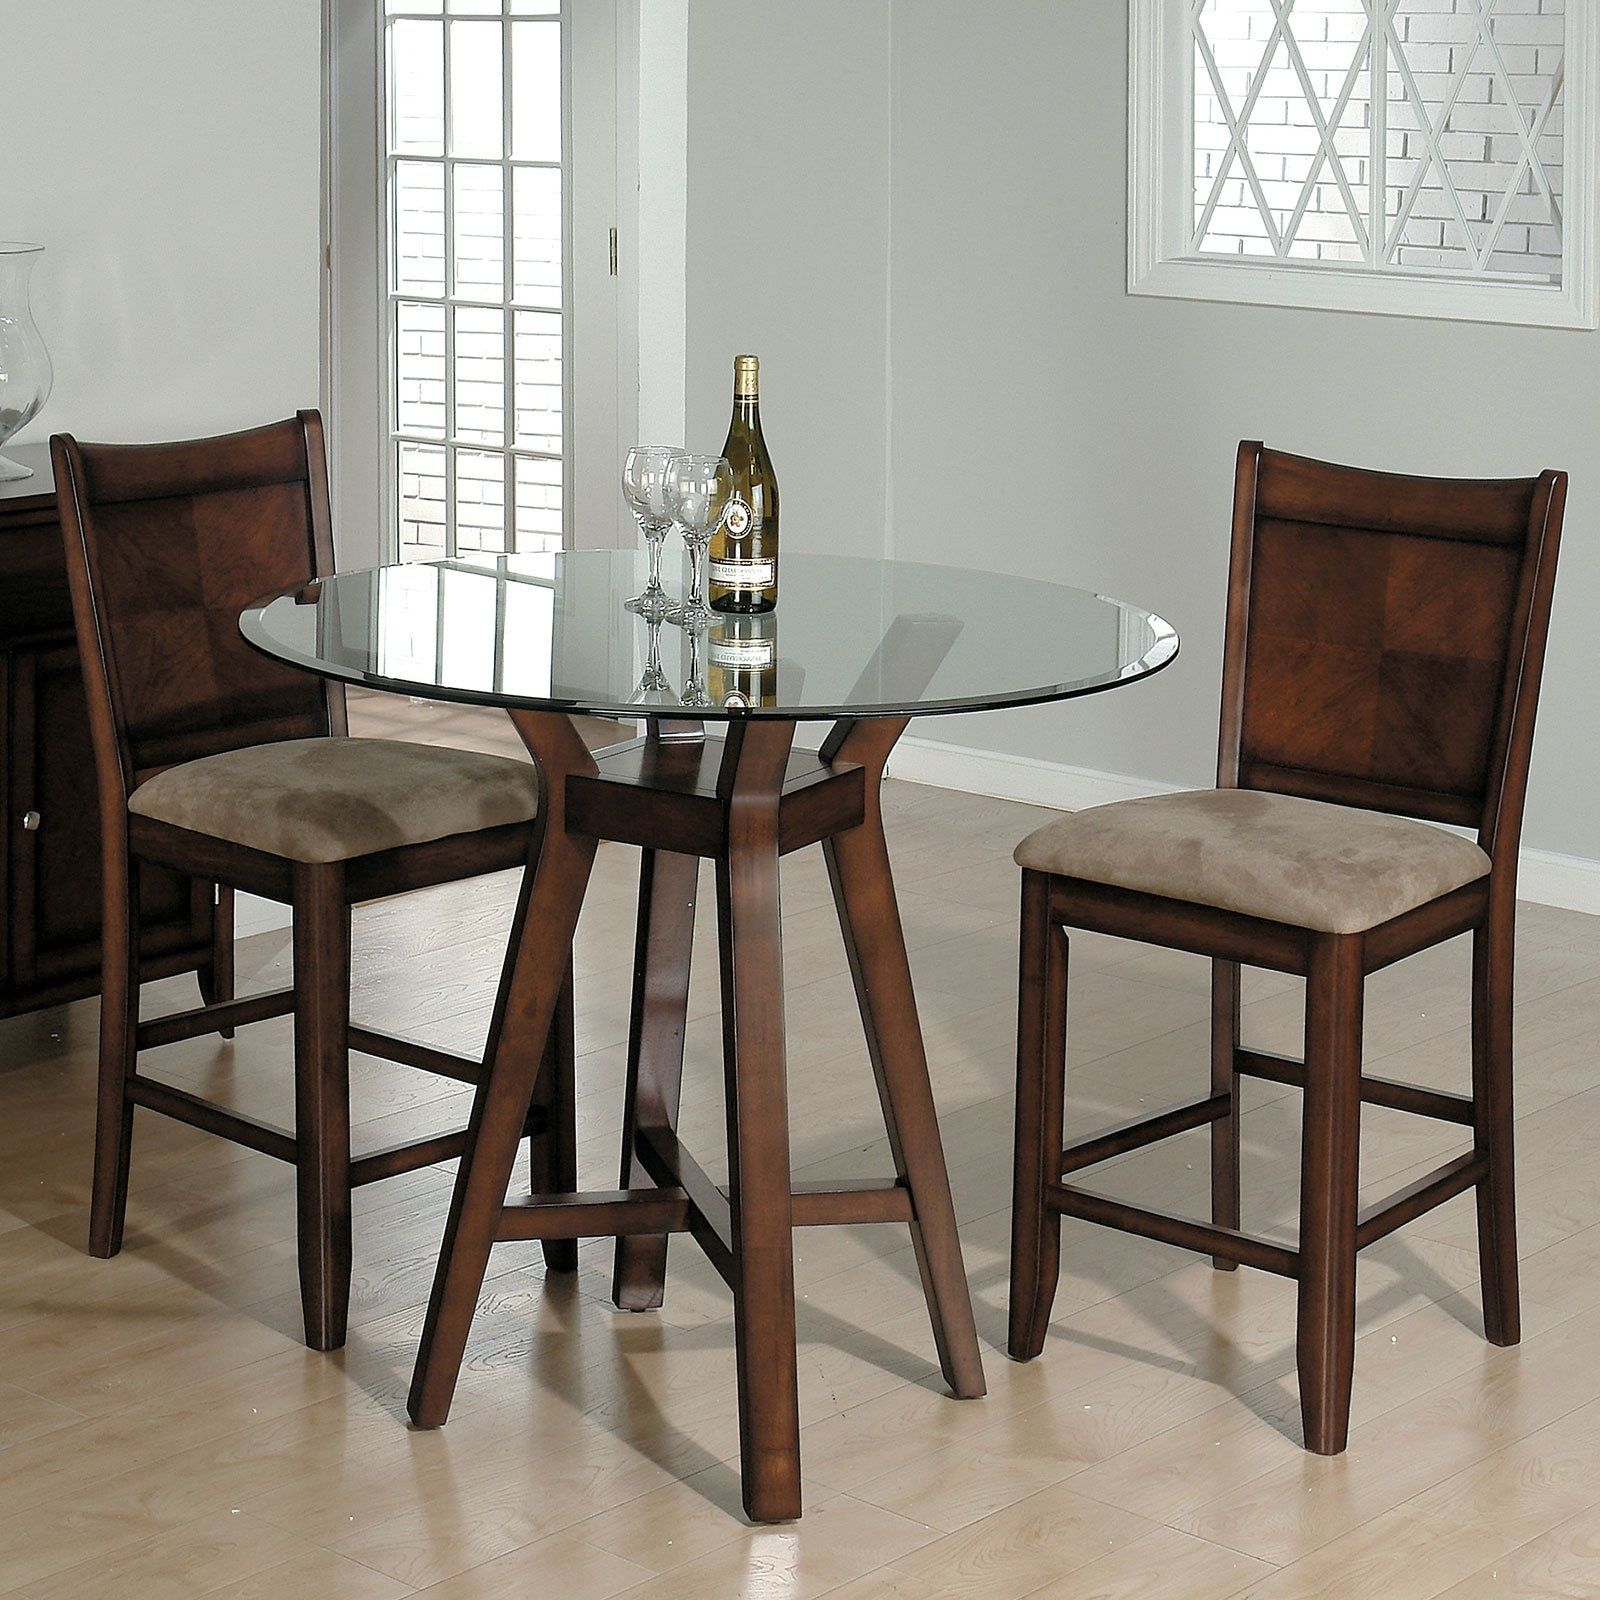 Bistro Table Sets For Kitchen | http://manageditservicesatlanta.net ...